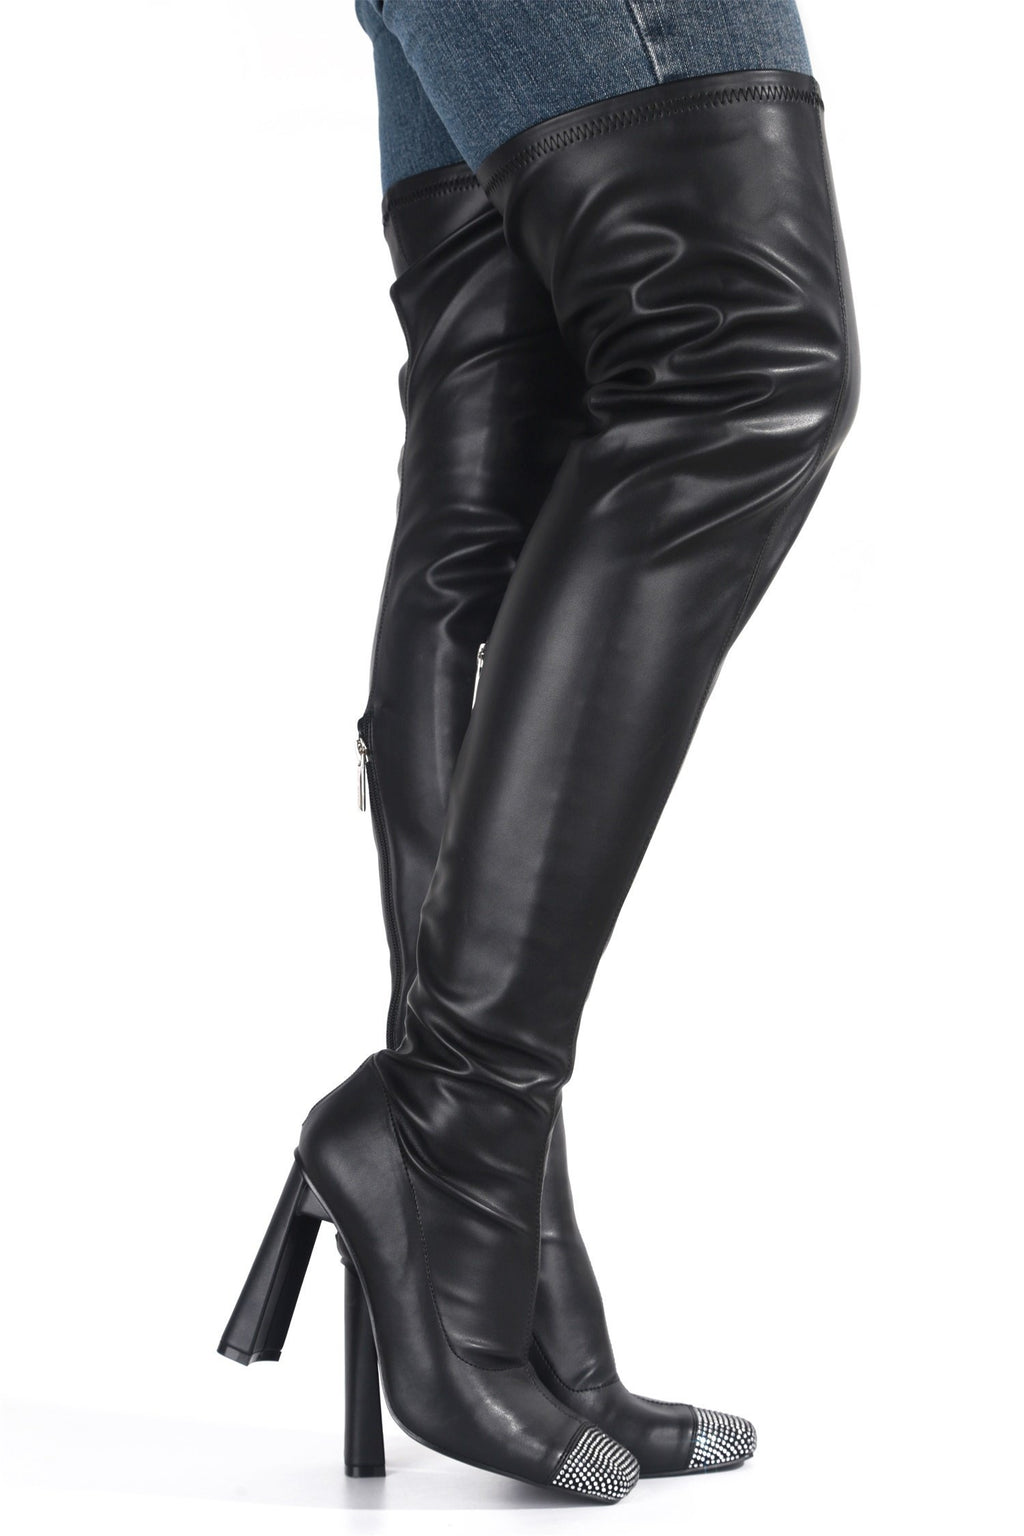 Cape Robbin Ringpop Black Over The Knee Boots